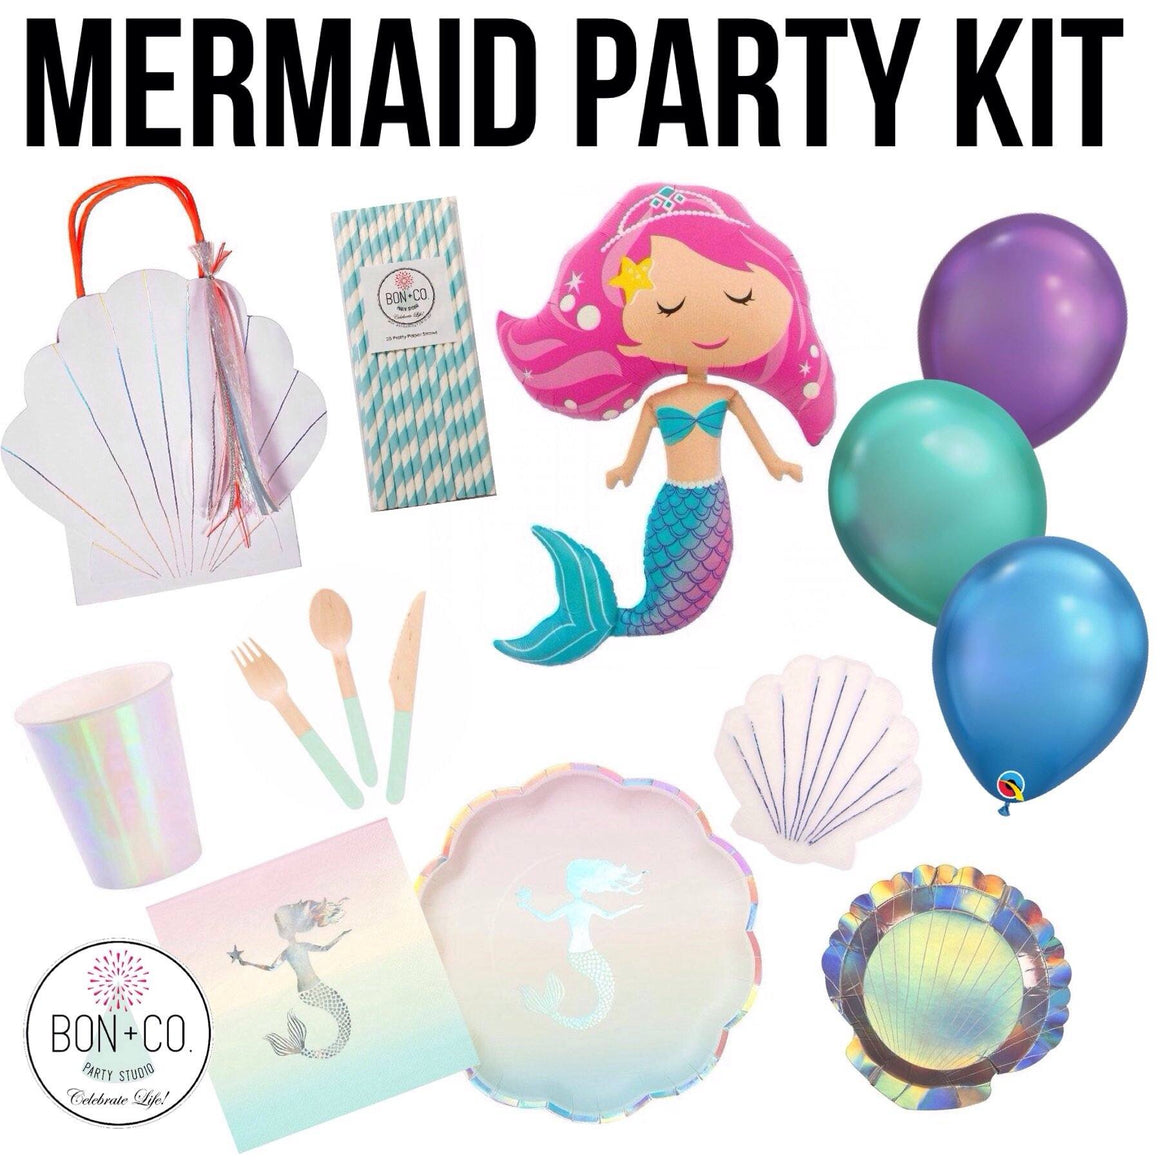 PARTY KIT - MERMAID